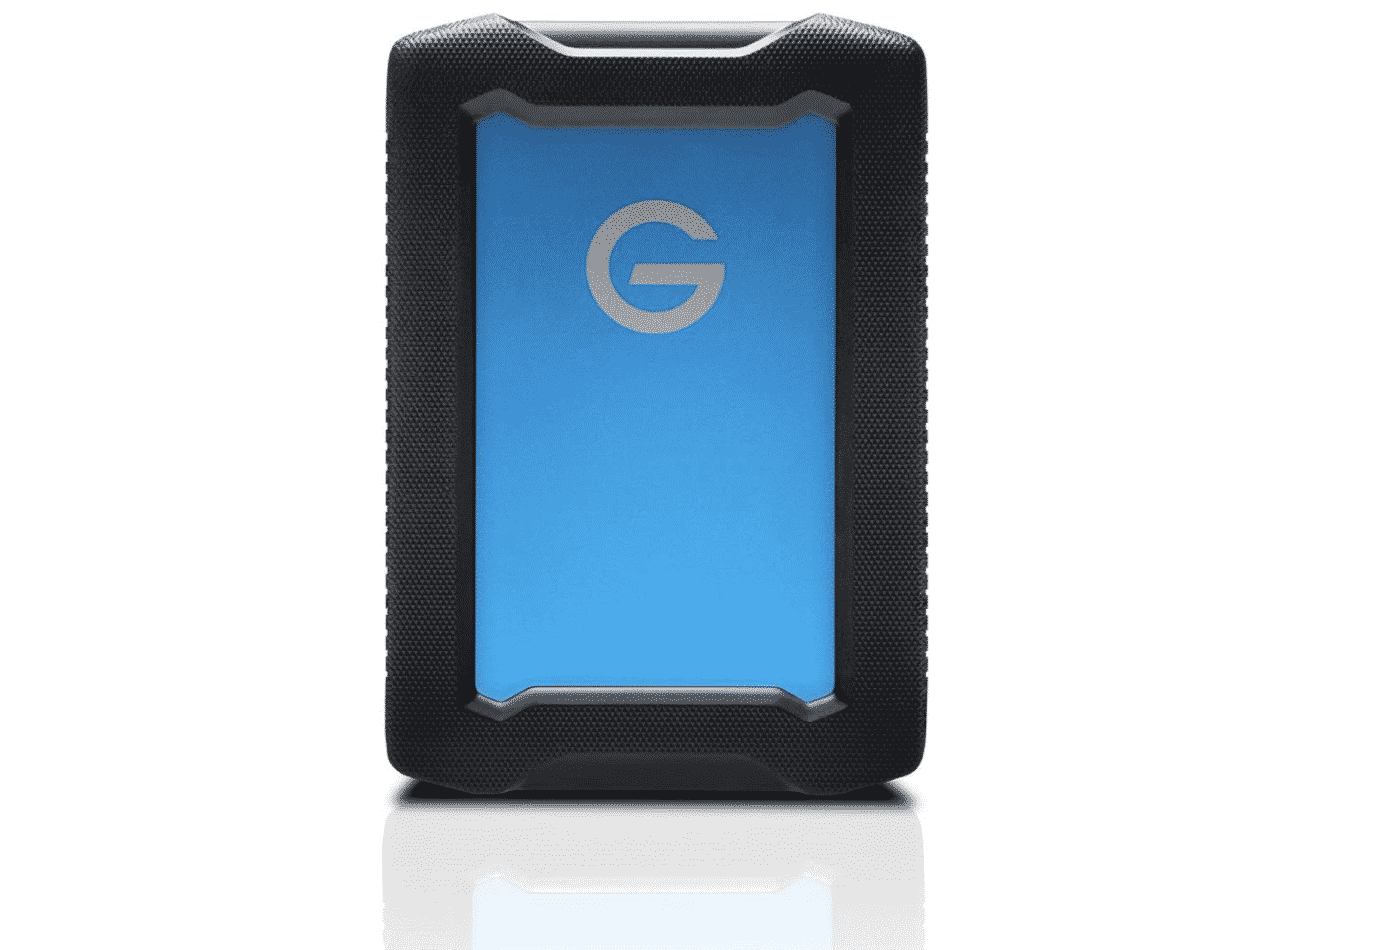 Protect Your Files From Physical Damage with the Rugged 4TB USB-C HD from G-Technology, Now Less $30